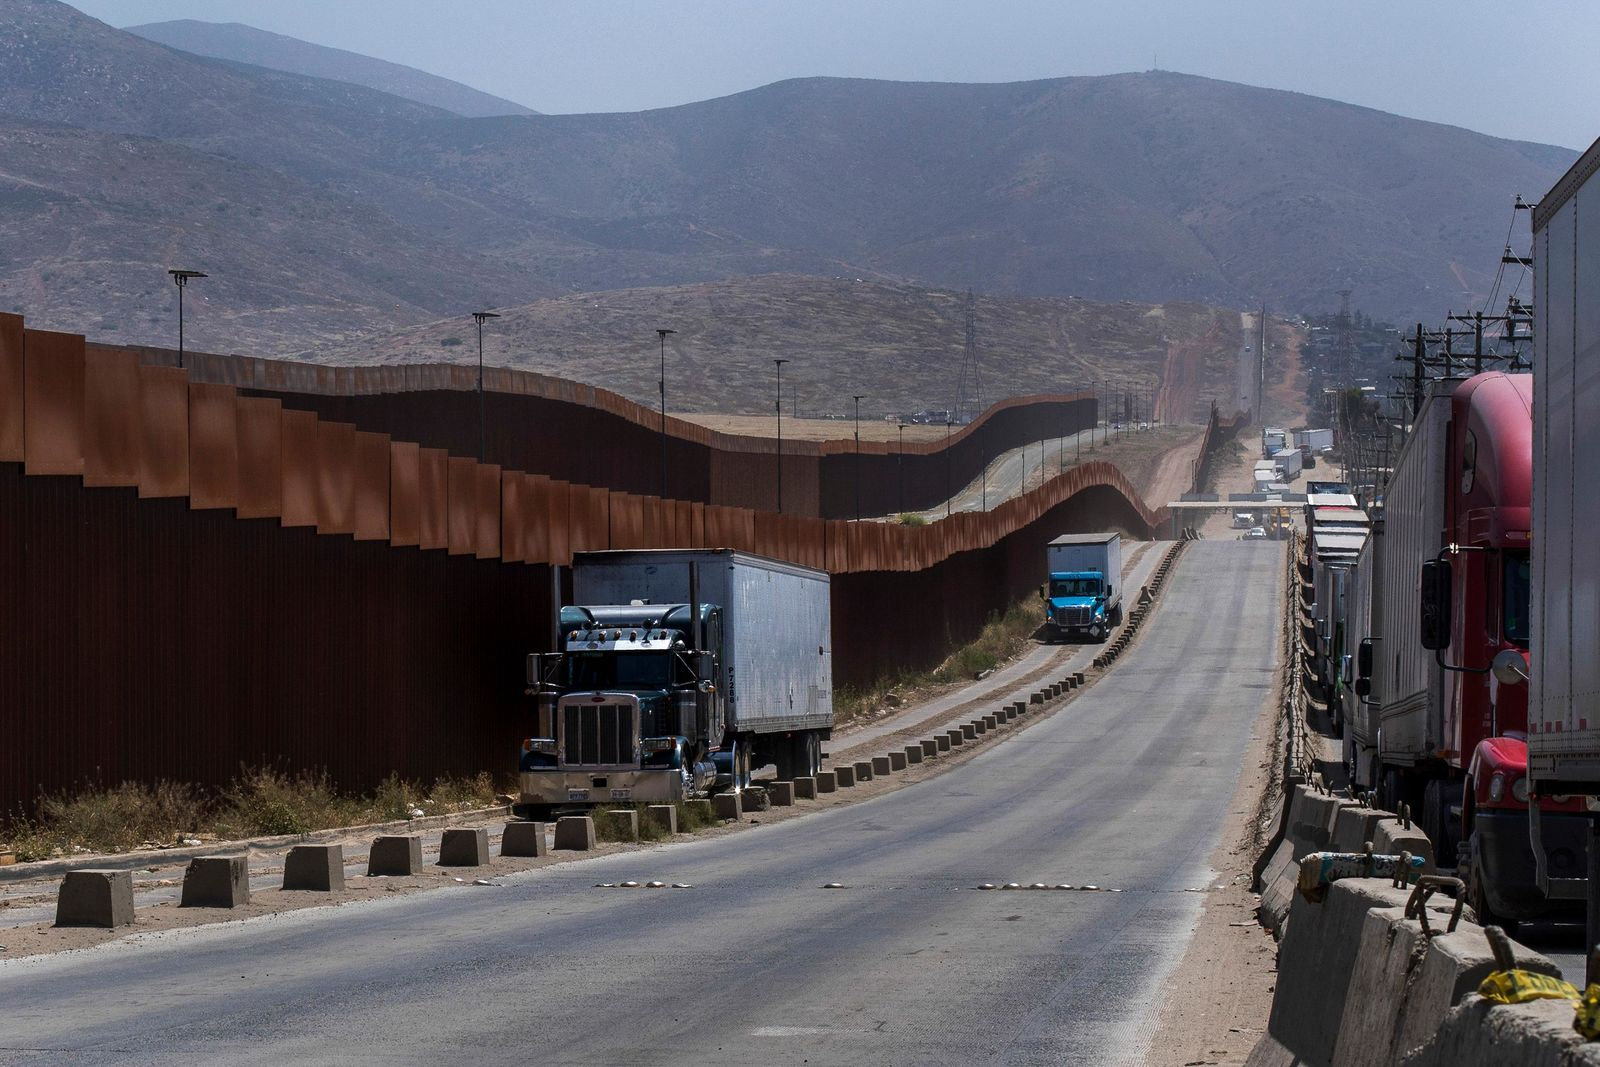 Trucks pass along a border wall as they get into position to cross into the United States at the border in Tijuana, Mexico, Friday, June 7, 2019.{ } (AP Photo/Hans-Maximo Musielik)